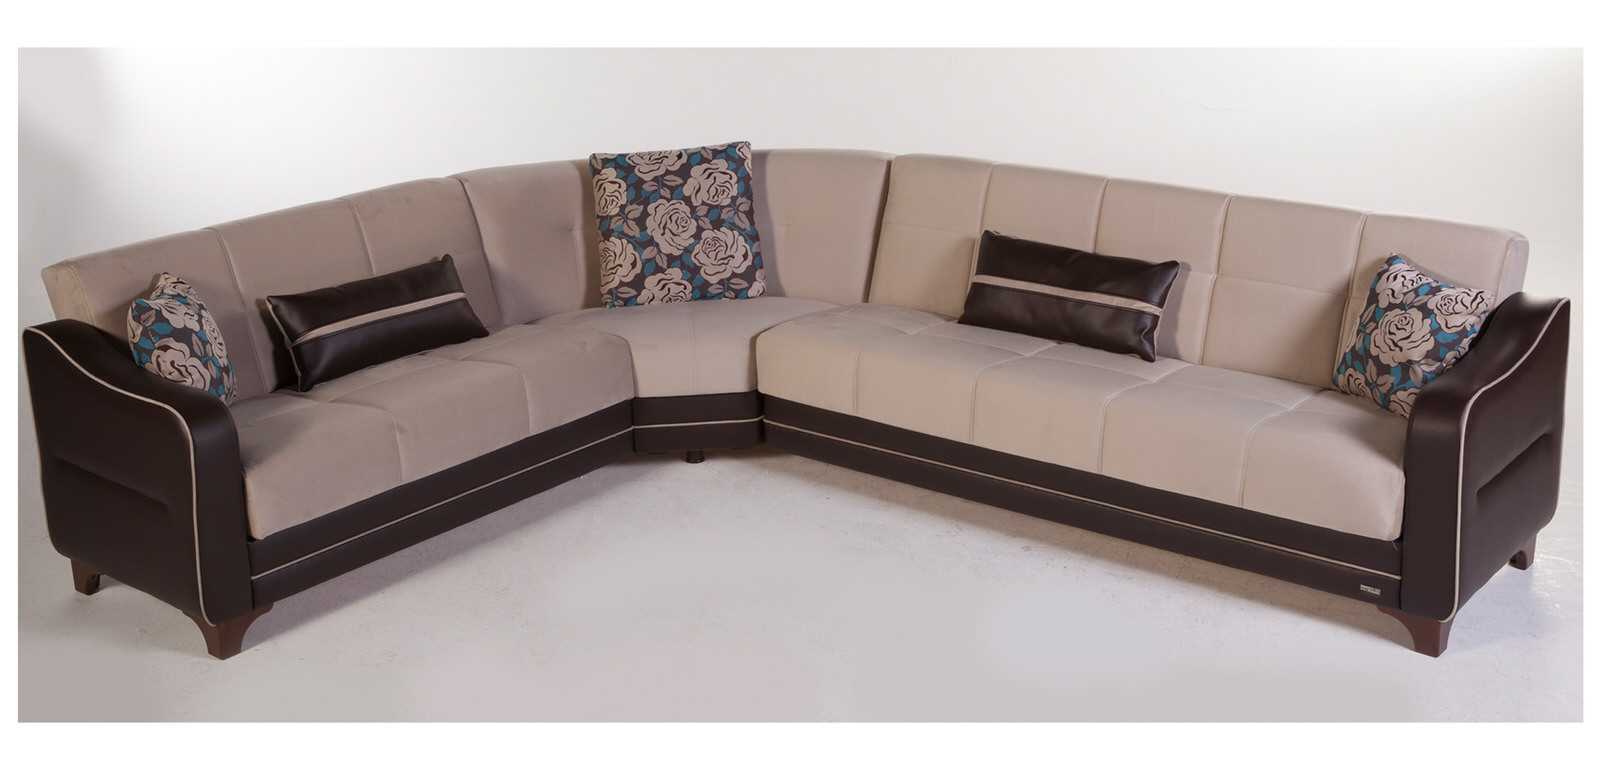 Minas orissa cream sectional sofa by sunset for Sectional sofa names